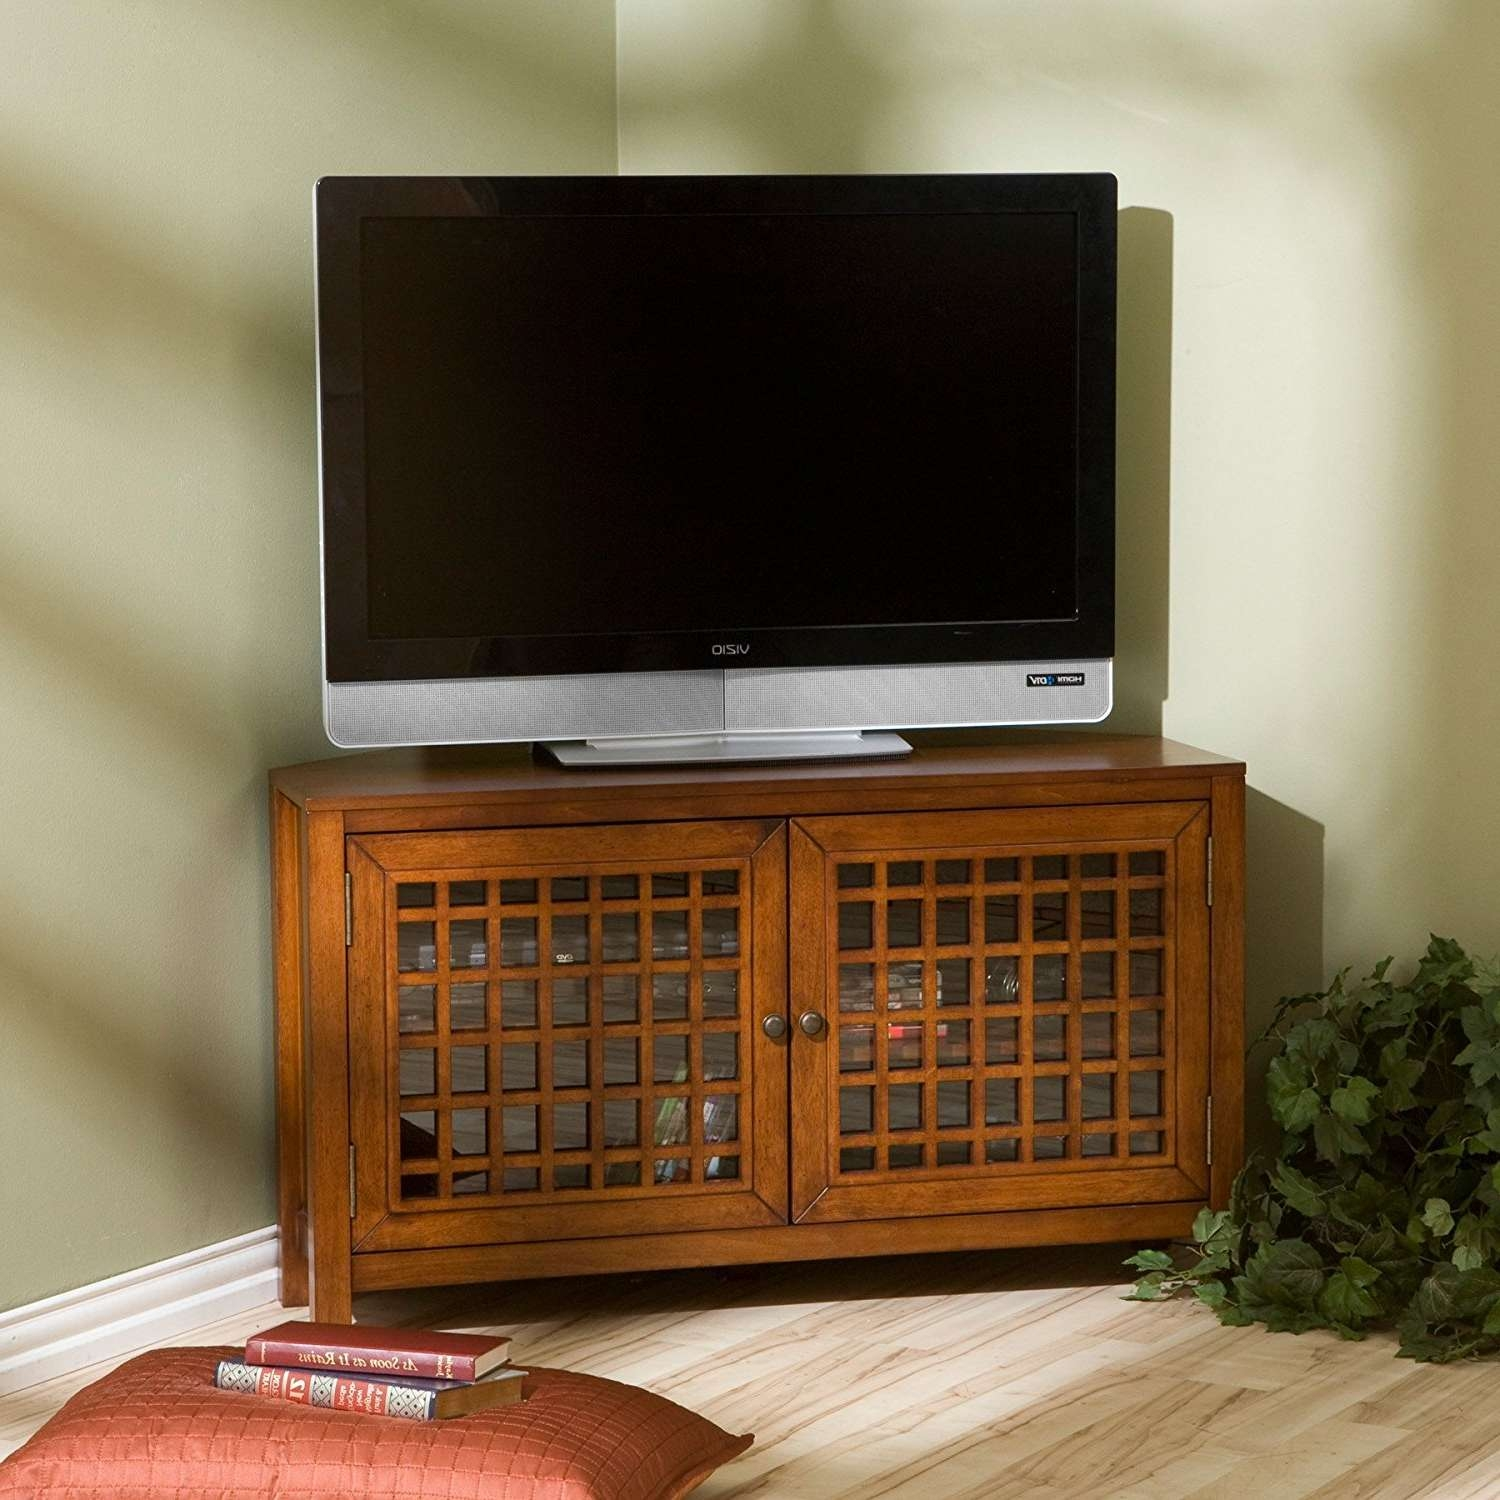 Tv : Cordoba Tv Stands Attractive Cordoba Tv Stand With Mount For Cordoba Tv Stands (View 4 of 15)